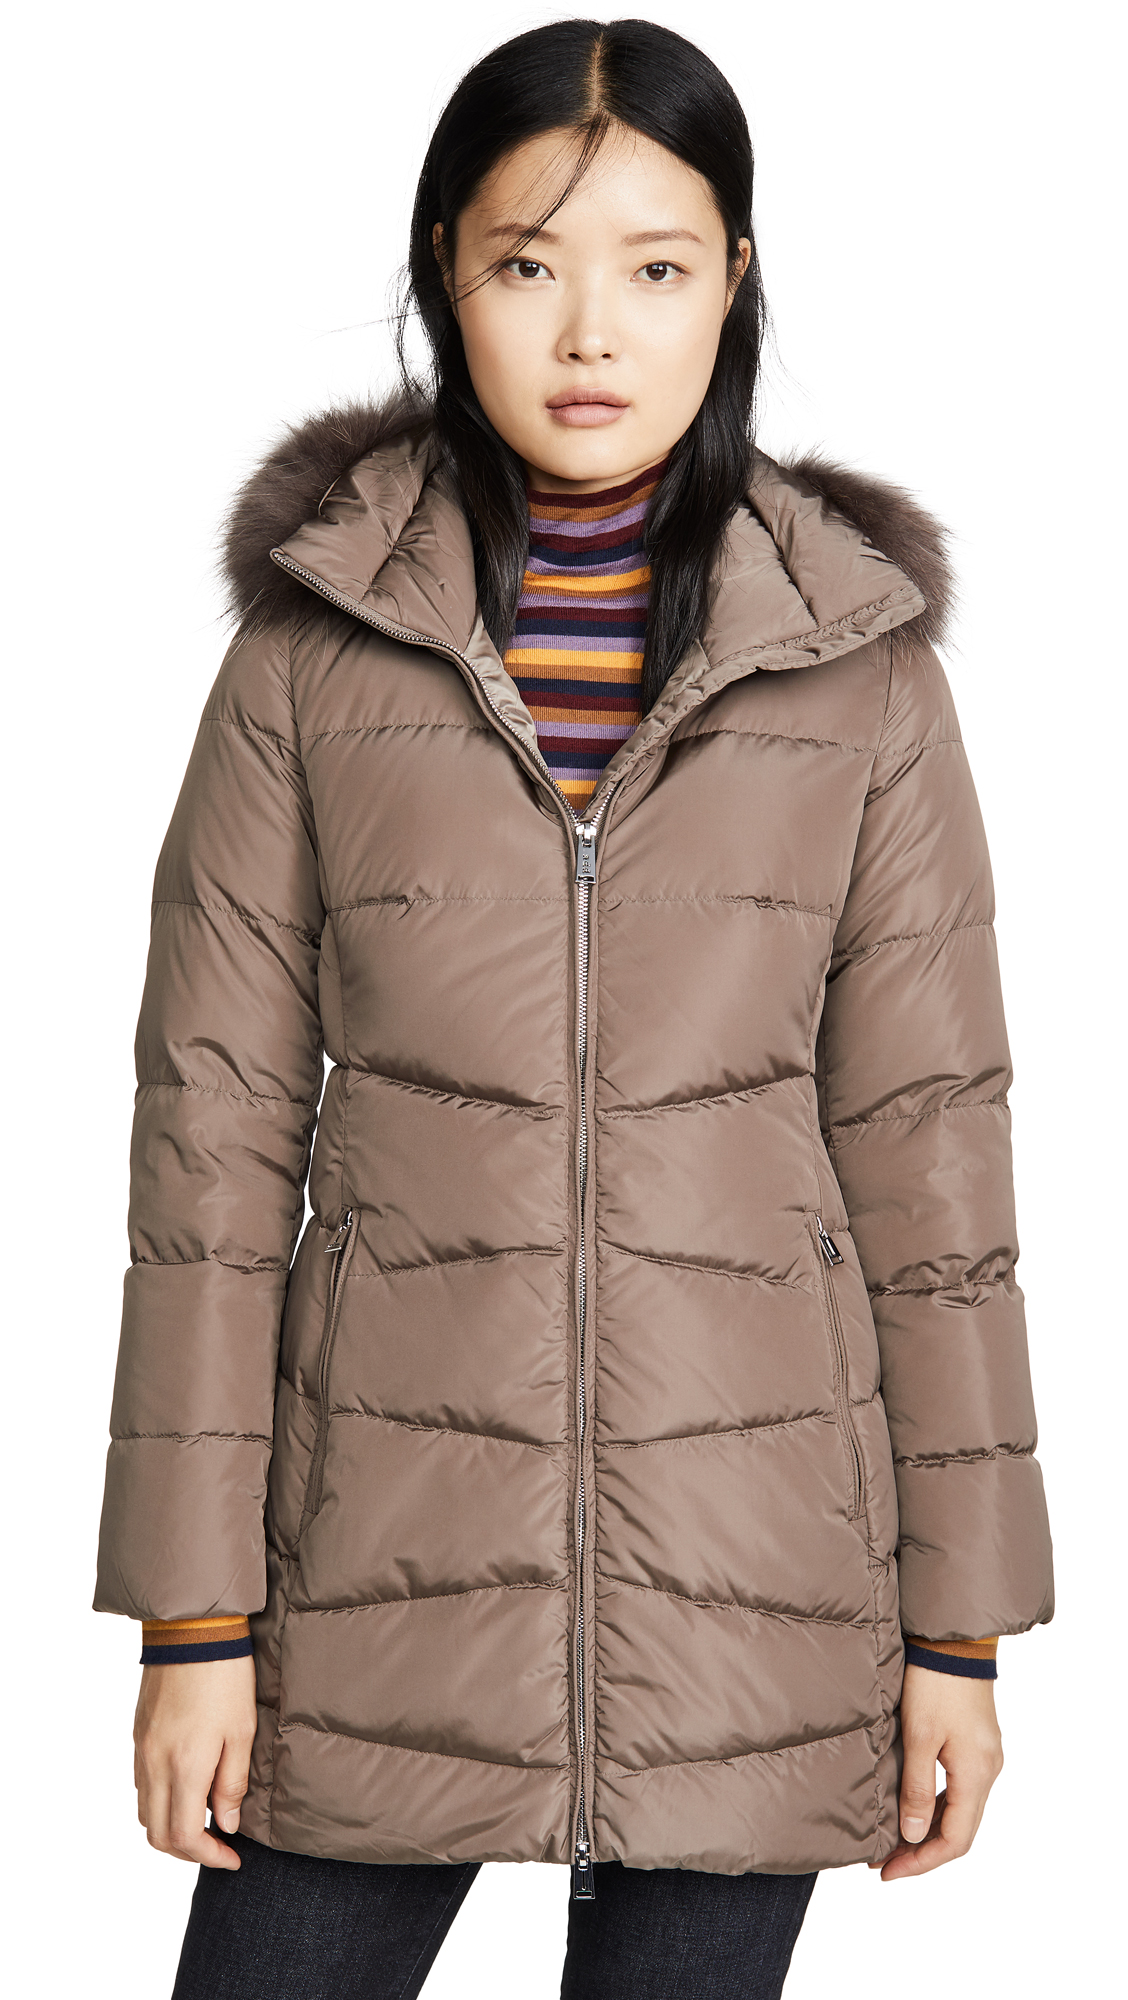 Add Down Down Coat With Detachable Fur Hood - Castor